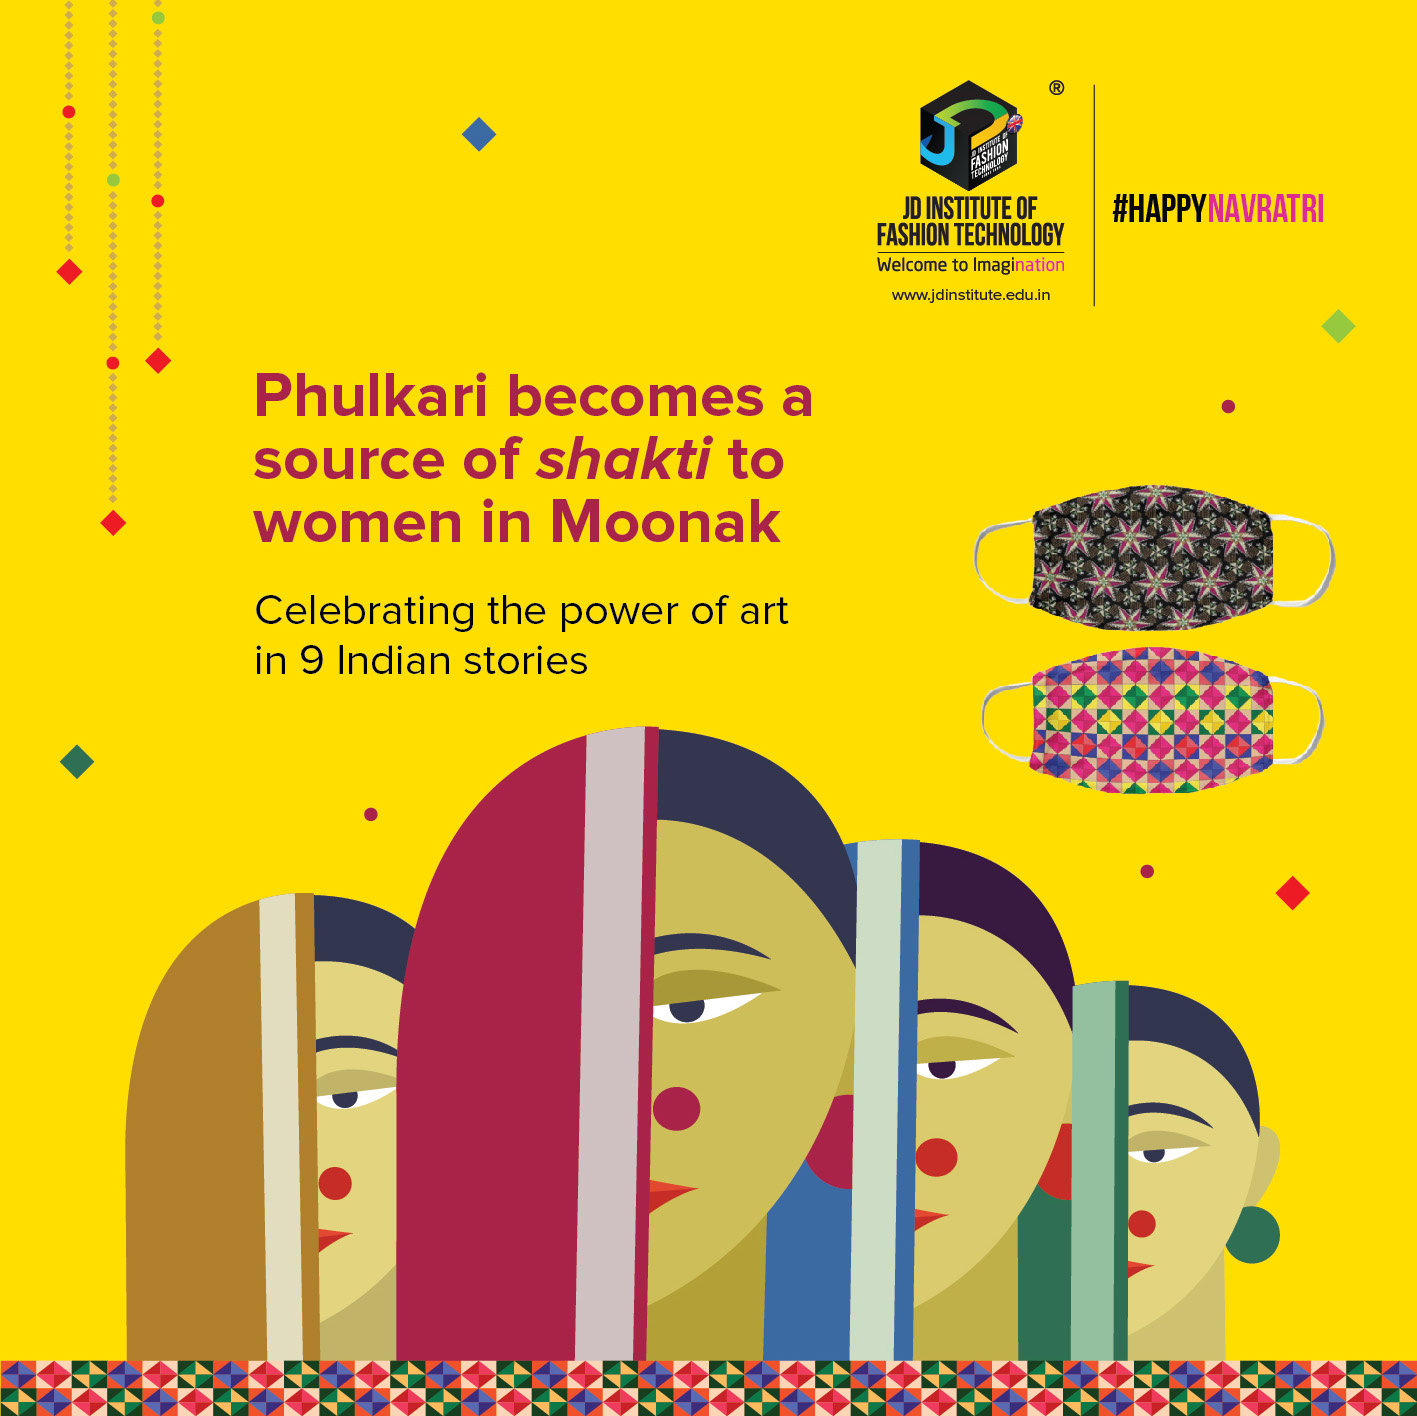 Phulkari sustainability - Phulkari - Sustainability and Revival of Arts and Crafts through a medley of 9 Women Centric Stories